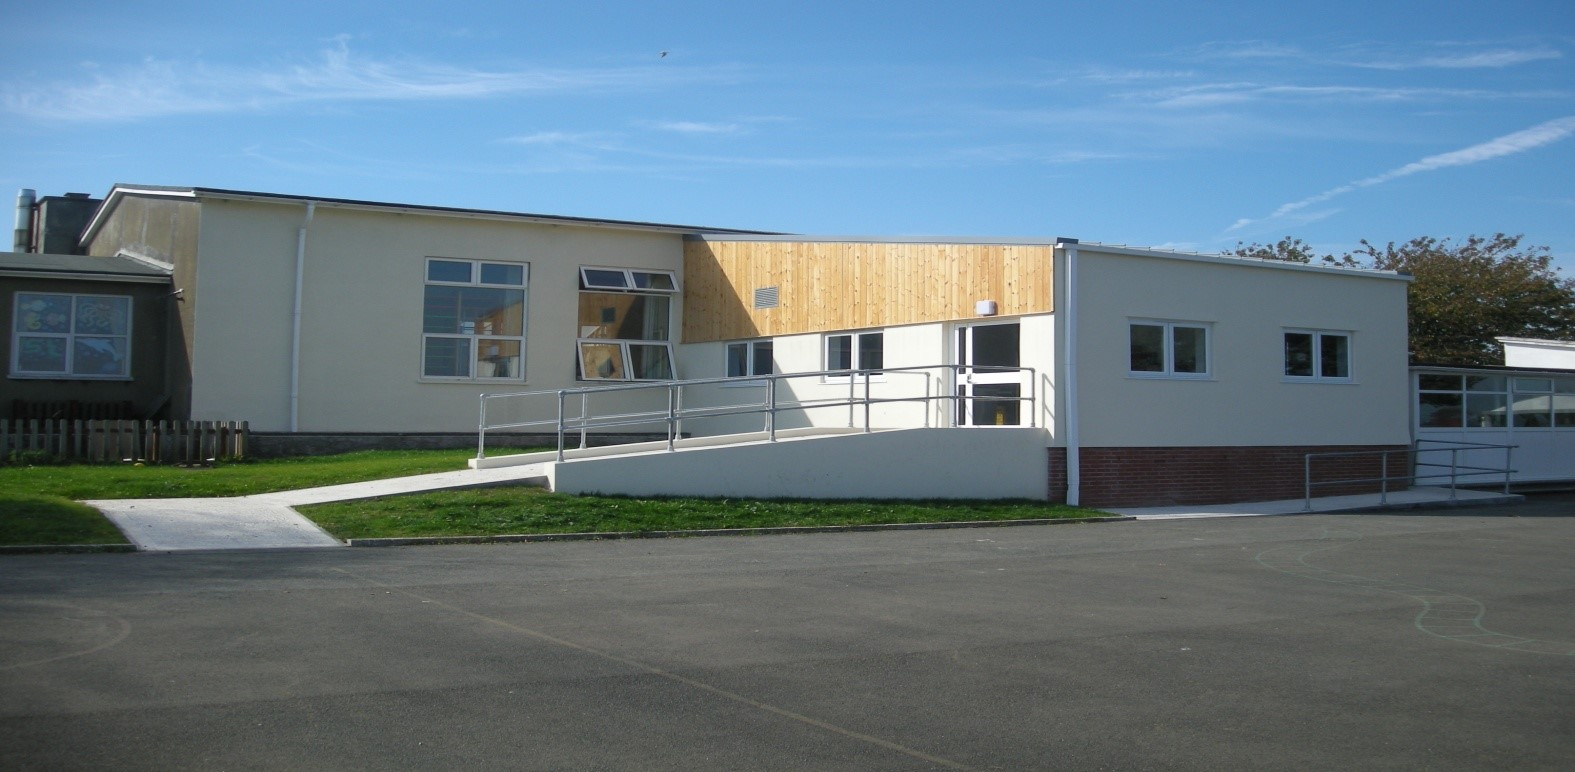 Plaistow Hill Infant & Nursery School, Plymouth